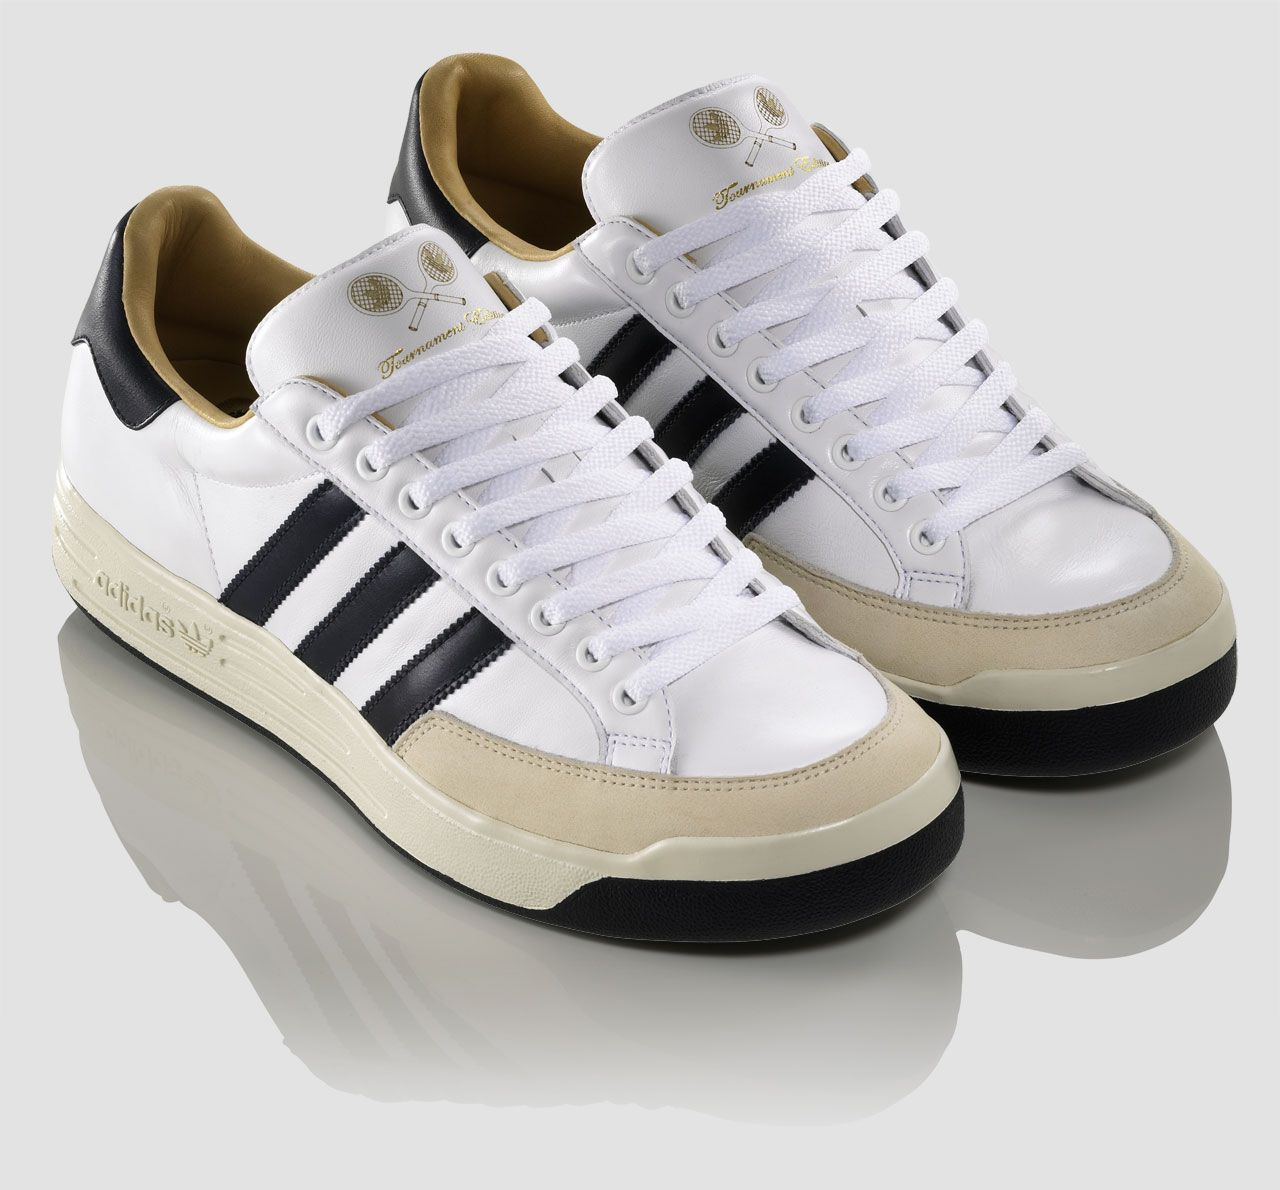 Adidas Homme Pas Chaussures Homme Cher Nastase france mv8NOwn0